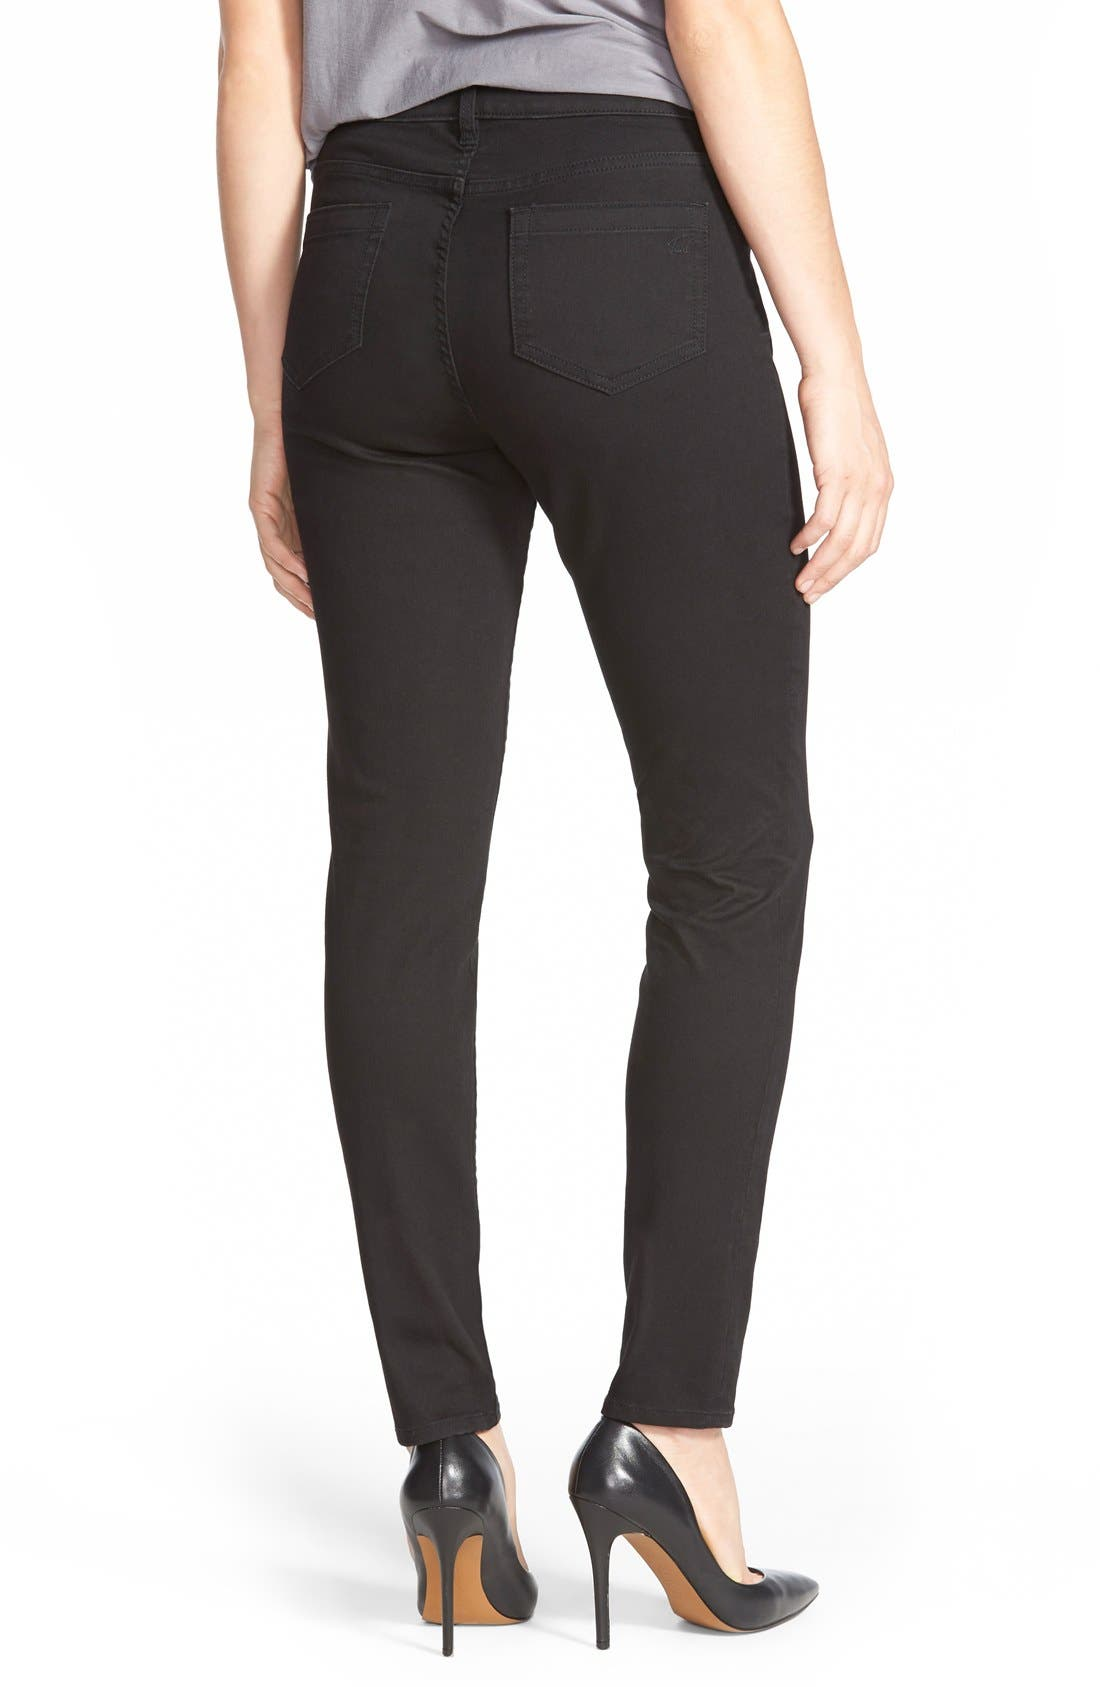 Alternate Image 2  - Two by Vince Camuto Stretch Skinny Jeans